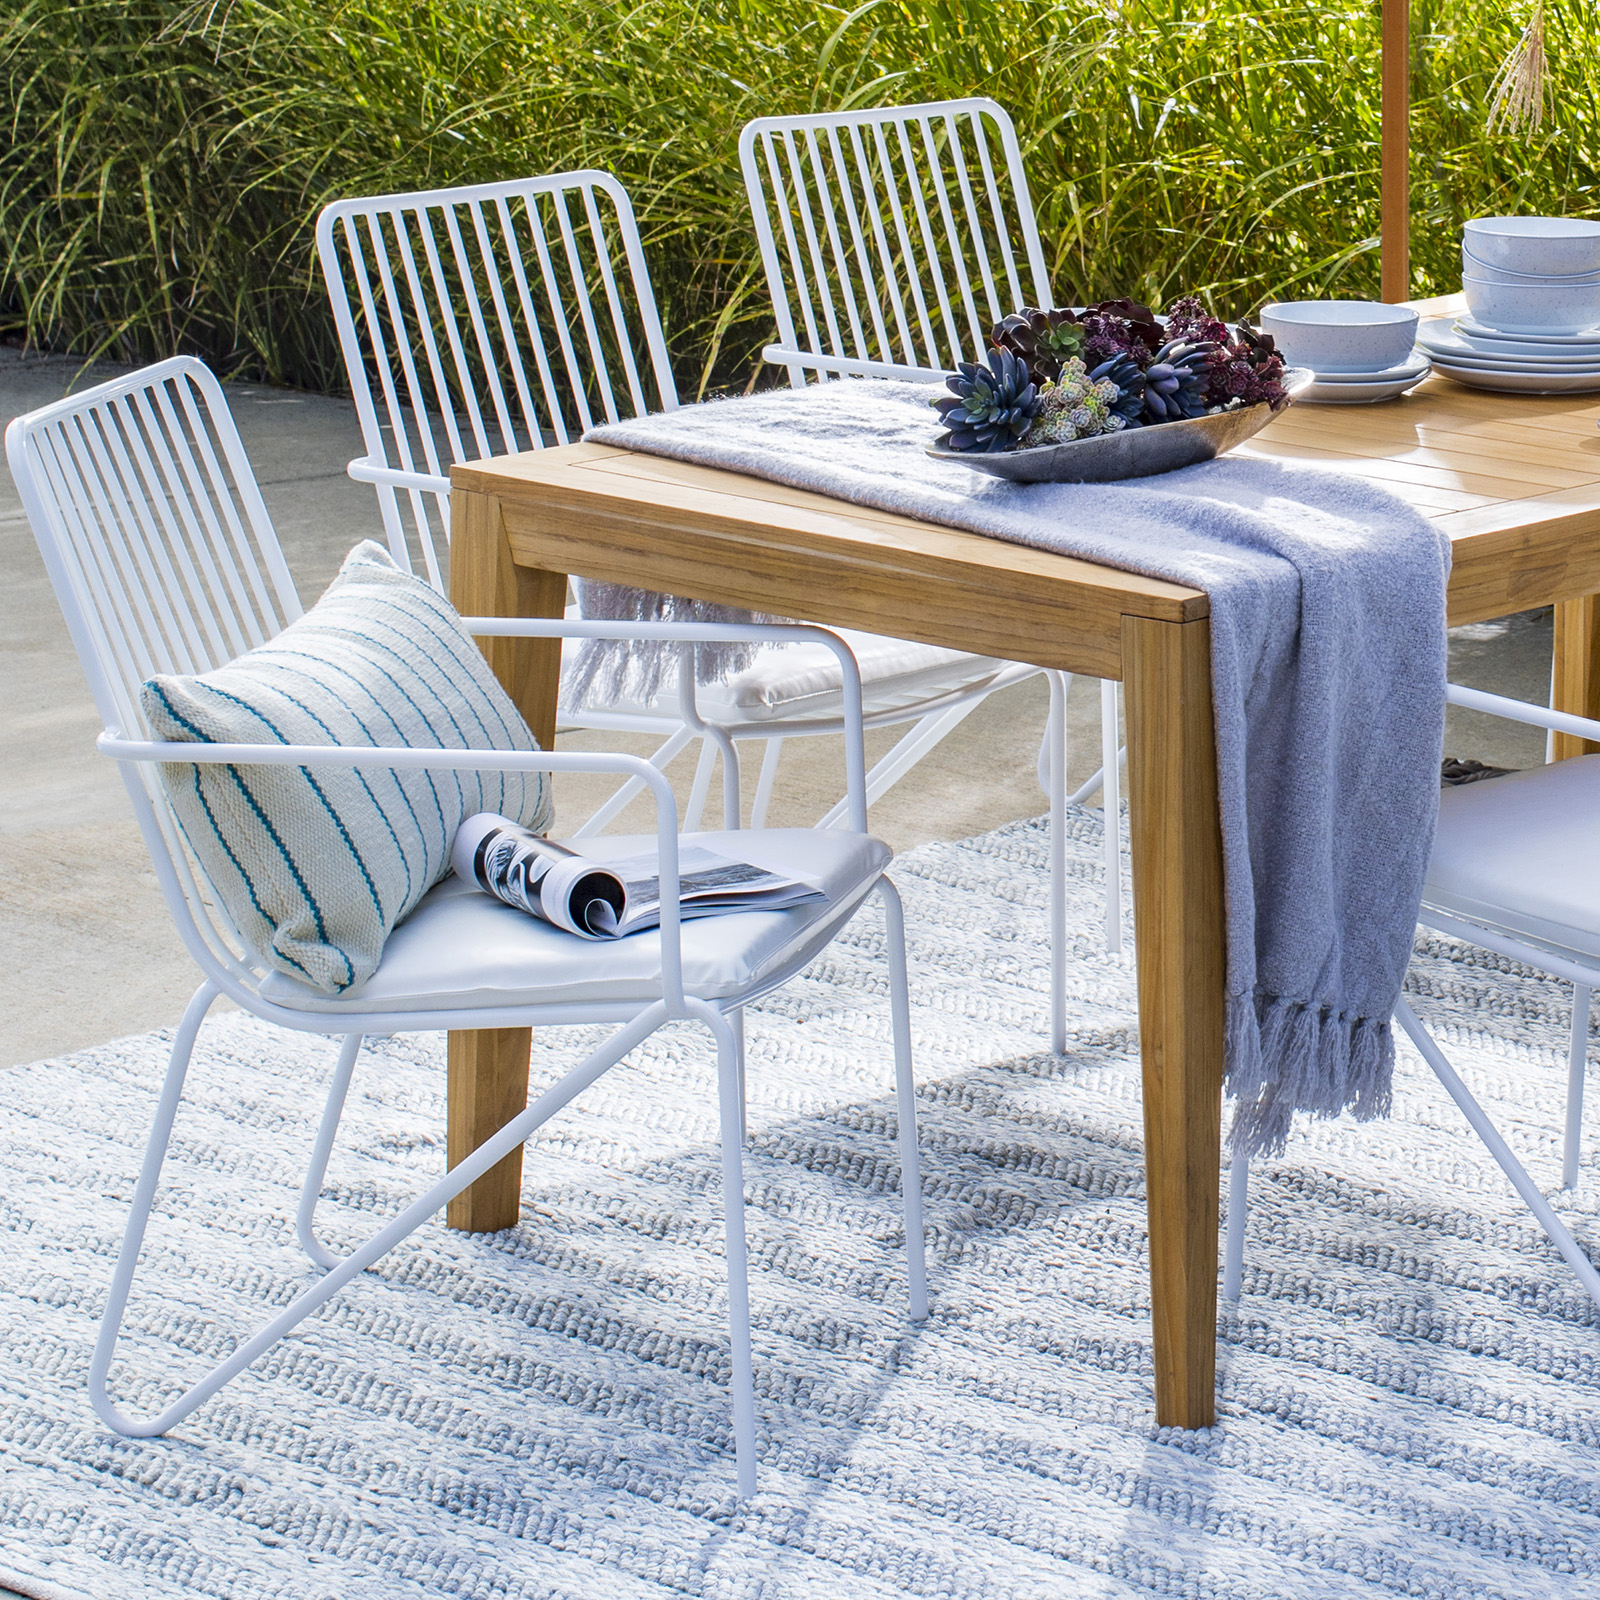 modern white patio chairs around outdoor table